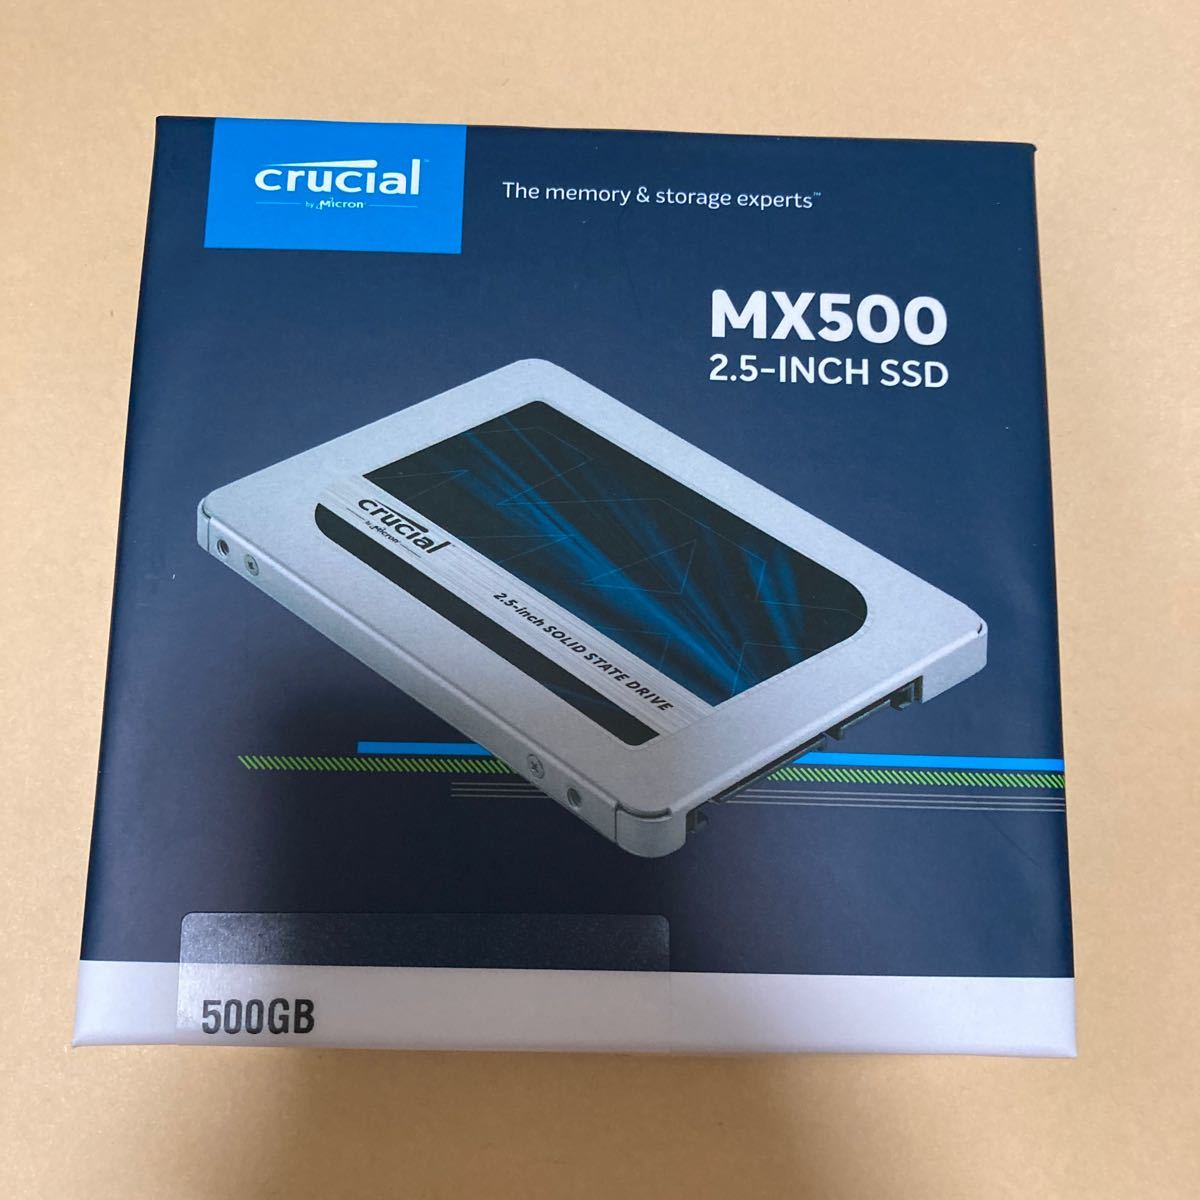 Crucial MX500 SSD 2.5インチ 500GB CT500MX500SSD1 7mm 内蔵SSD SATA 6Gbps